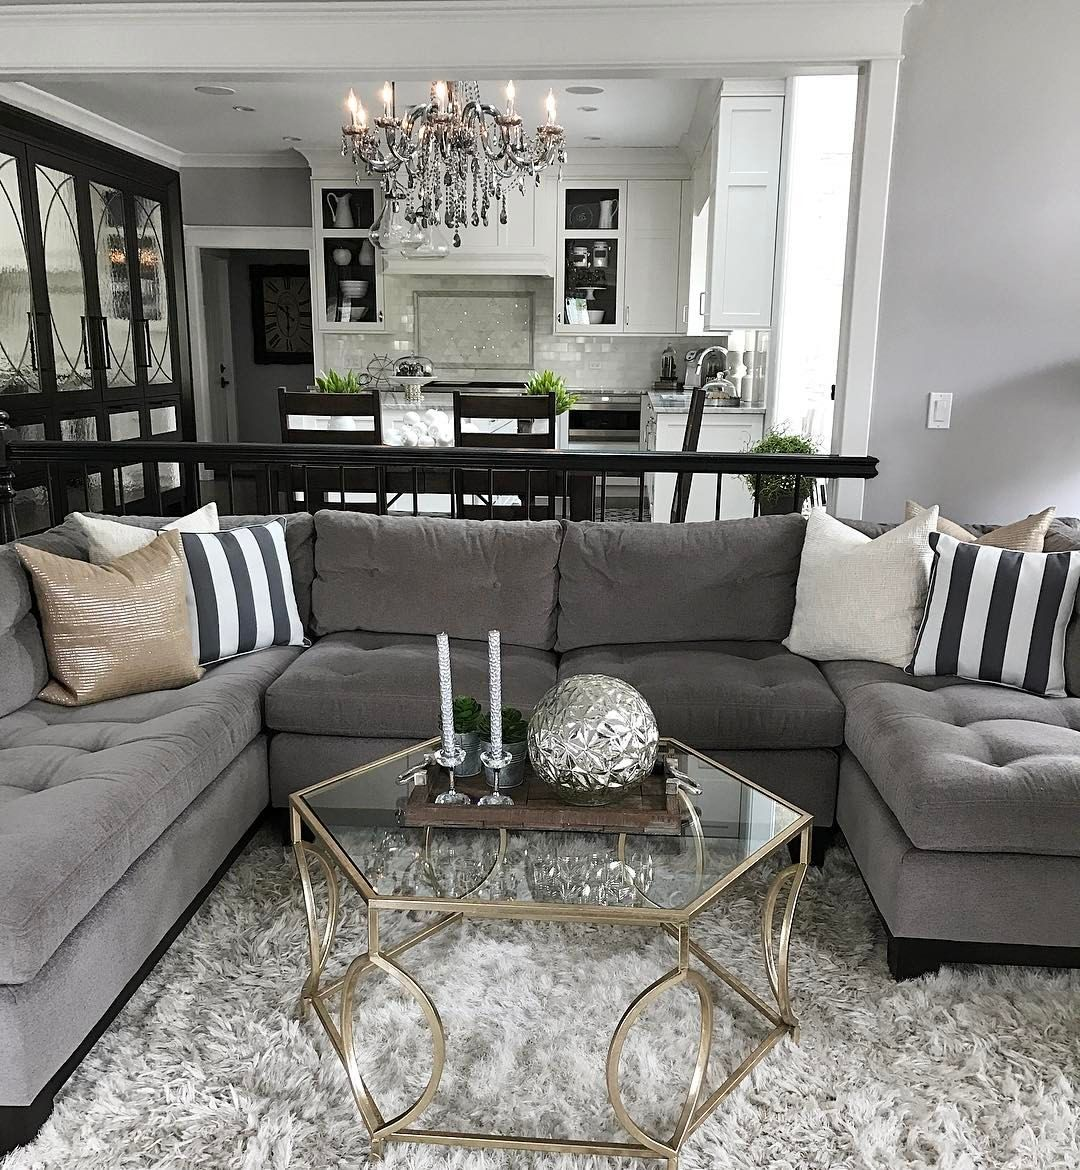 Change Up The Gray Couch With And Chic Black And White Striped Accents Grey Couch Living Room Living Room Decor Gray Grey Sofa Living Room